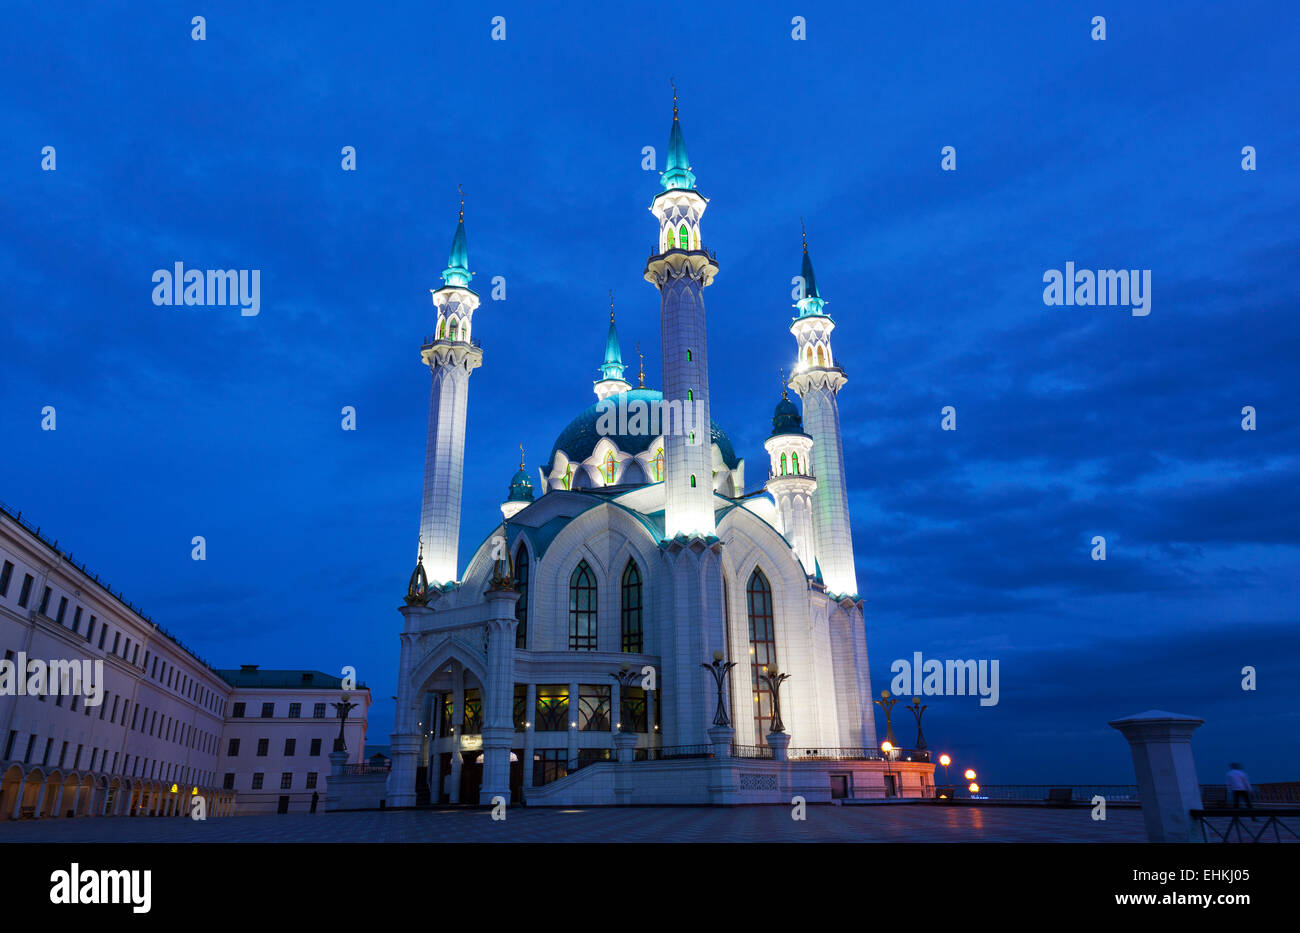 View of the mosque Qol Sharif in Kazan at night - Stock Image